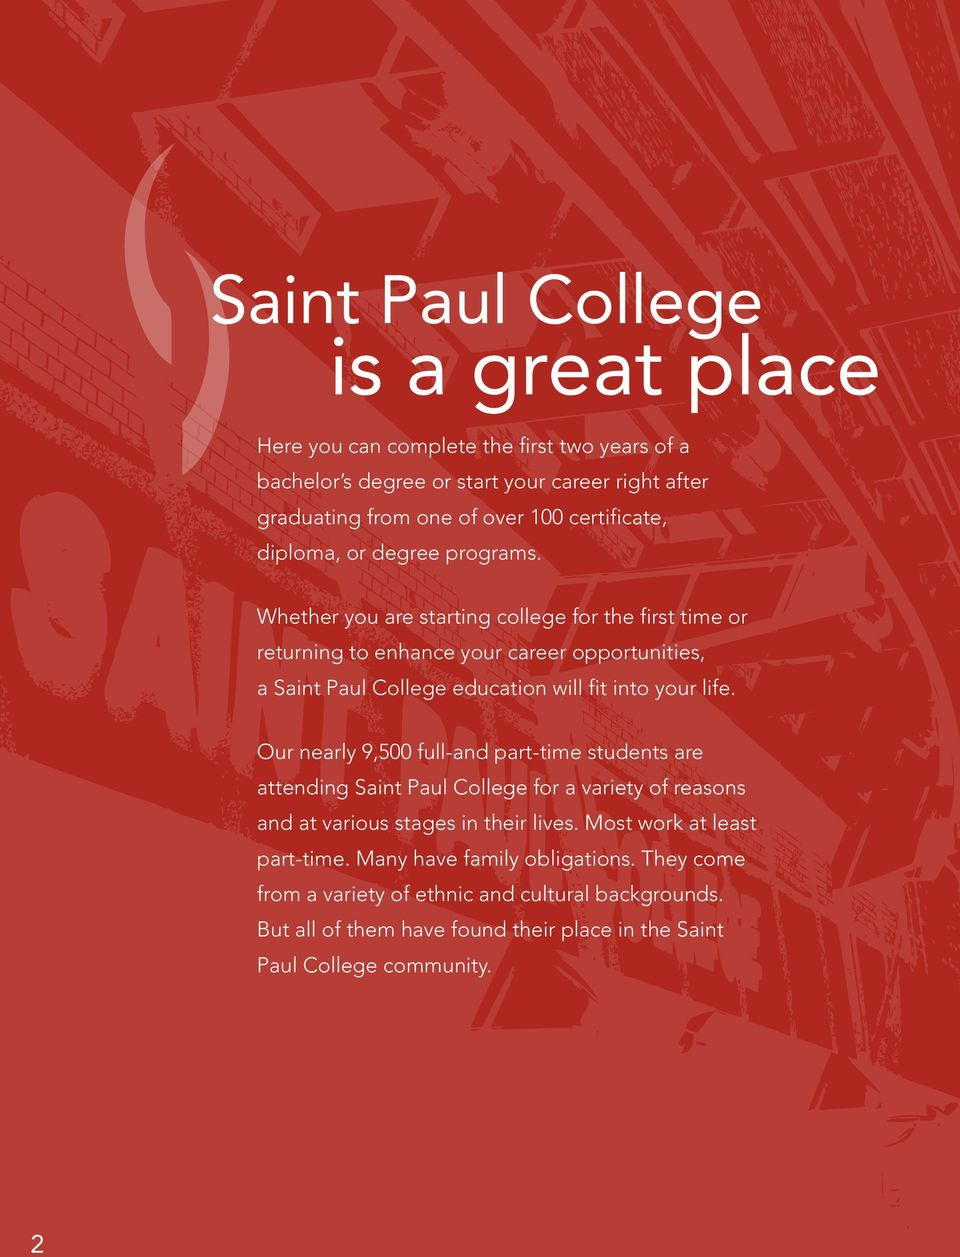 Whether you are starting college for the first time or returning to enhance your career opportunities, a Saint Paul College education will fit into your life.